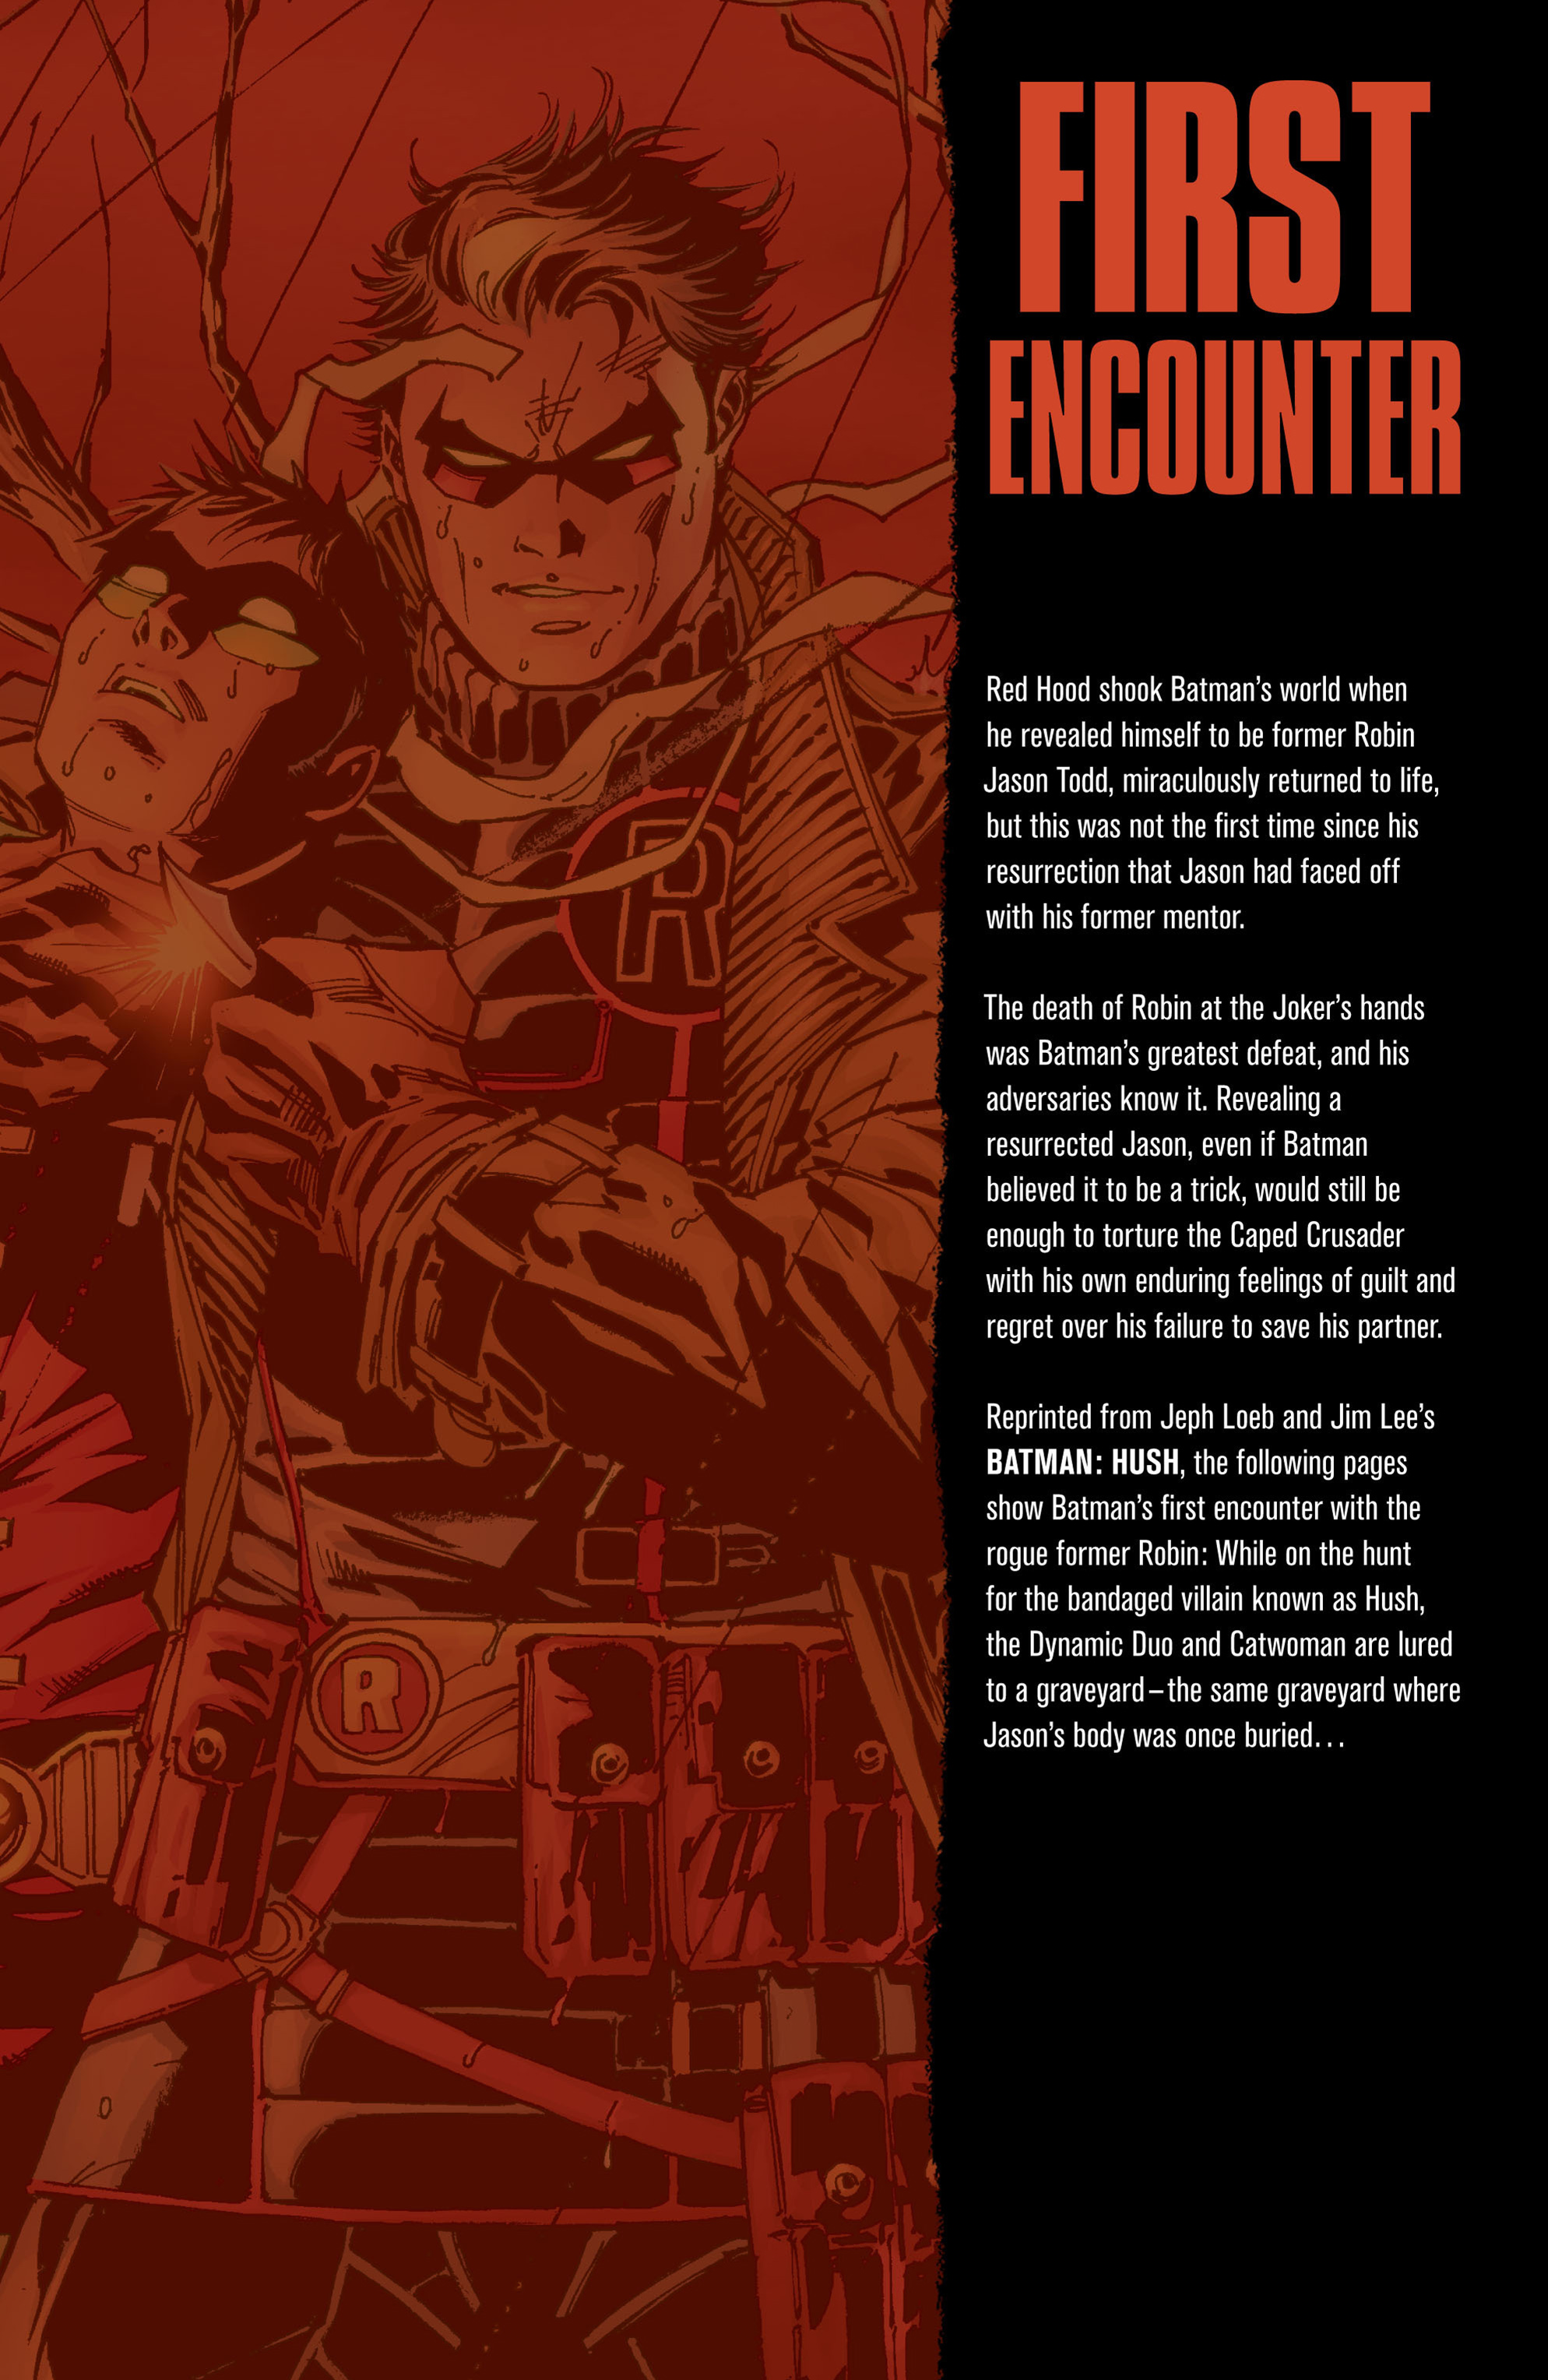 Read online Batman: Under The Red Hood comic -  Issue # Full - 359